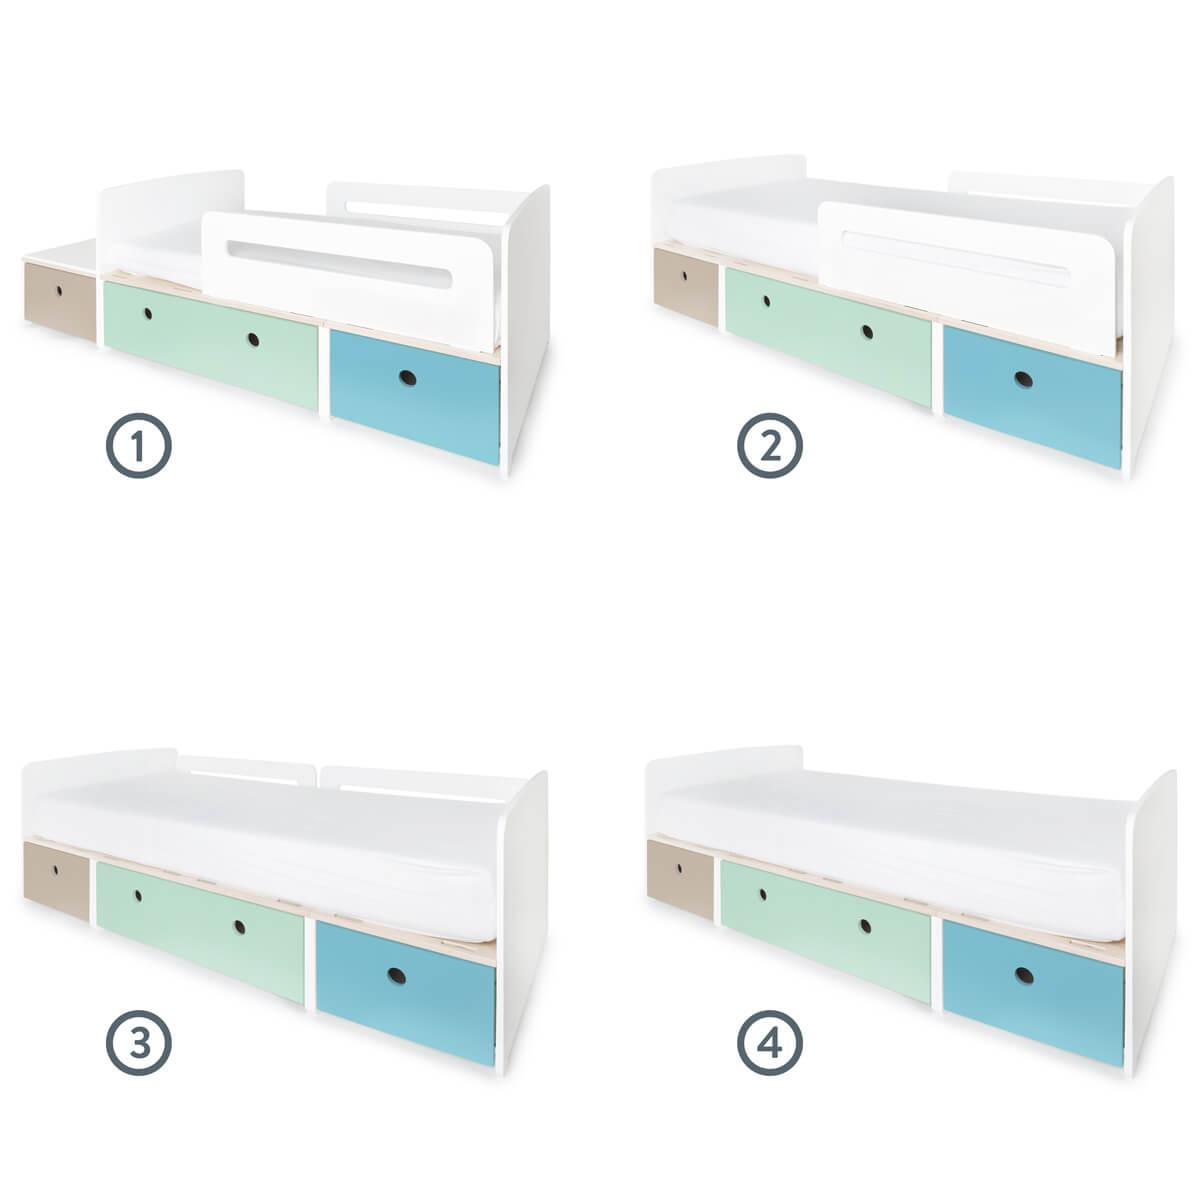 Cama evolutiva infantil 90x150/200cm COLORFLEX Abitare Kids warm grey-mint-paradise blue